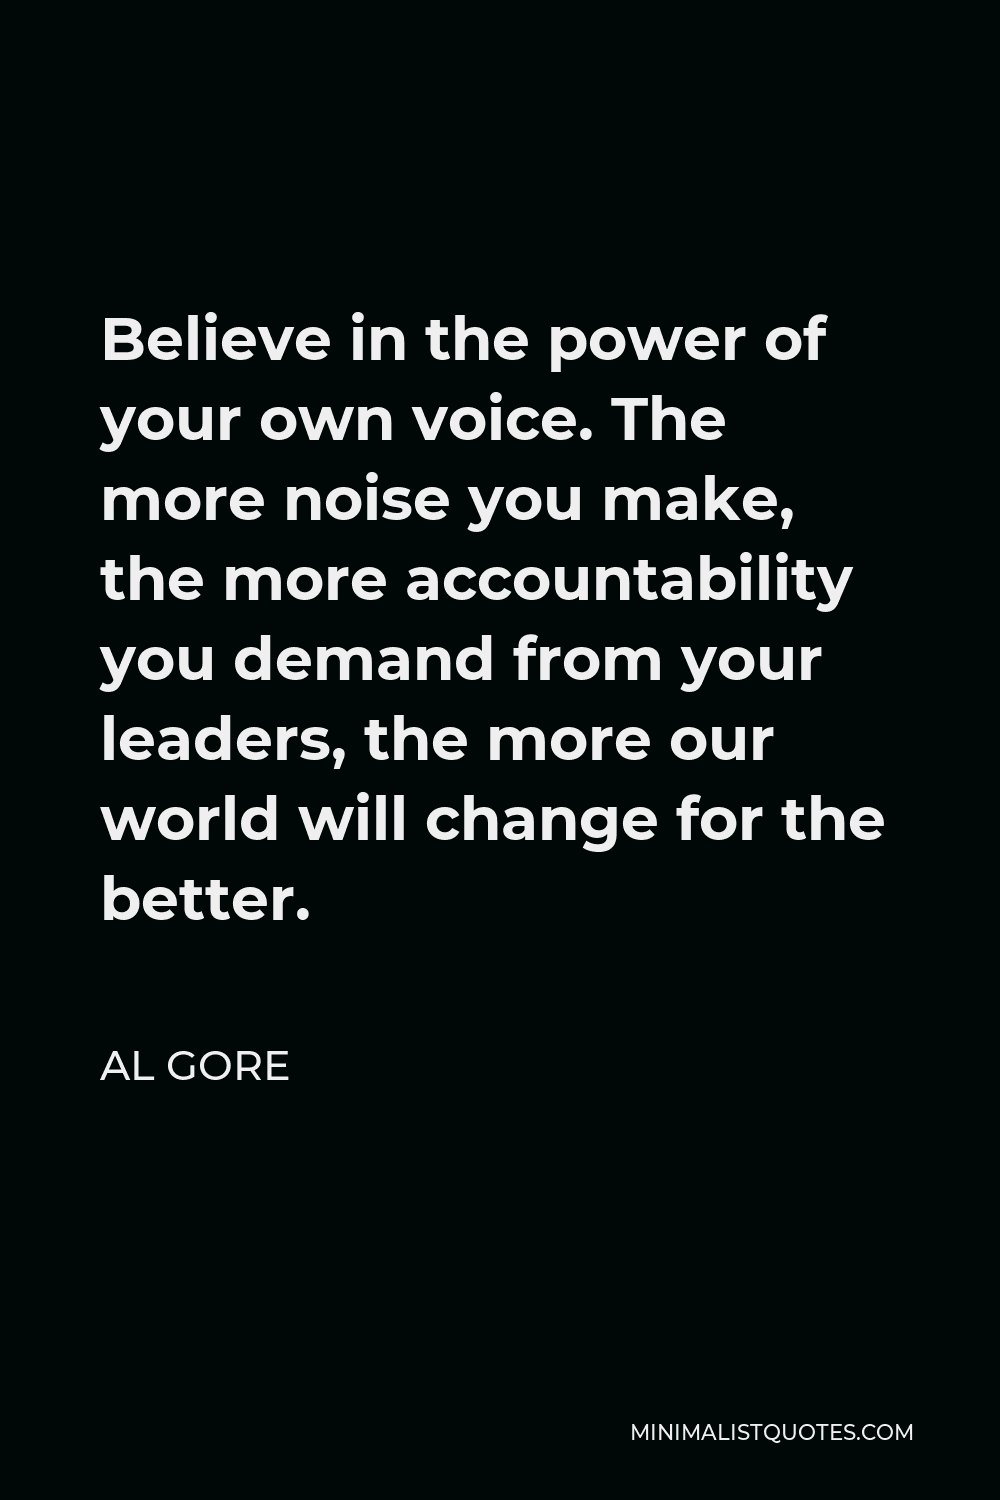 Al Gore Quote - Believe in the power of your own voice. The more noise you make, the more accountability you demand from your leaders, the more our world will change for the better.